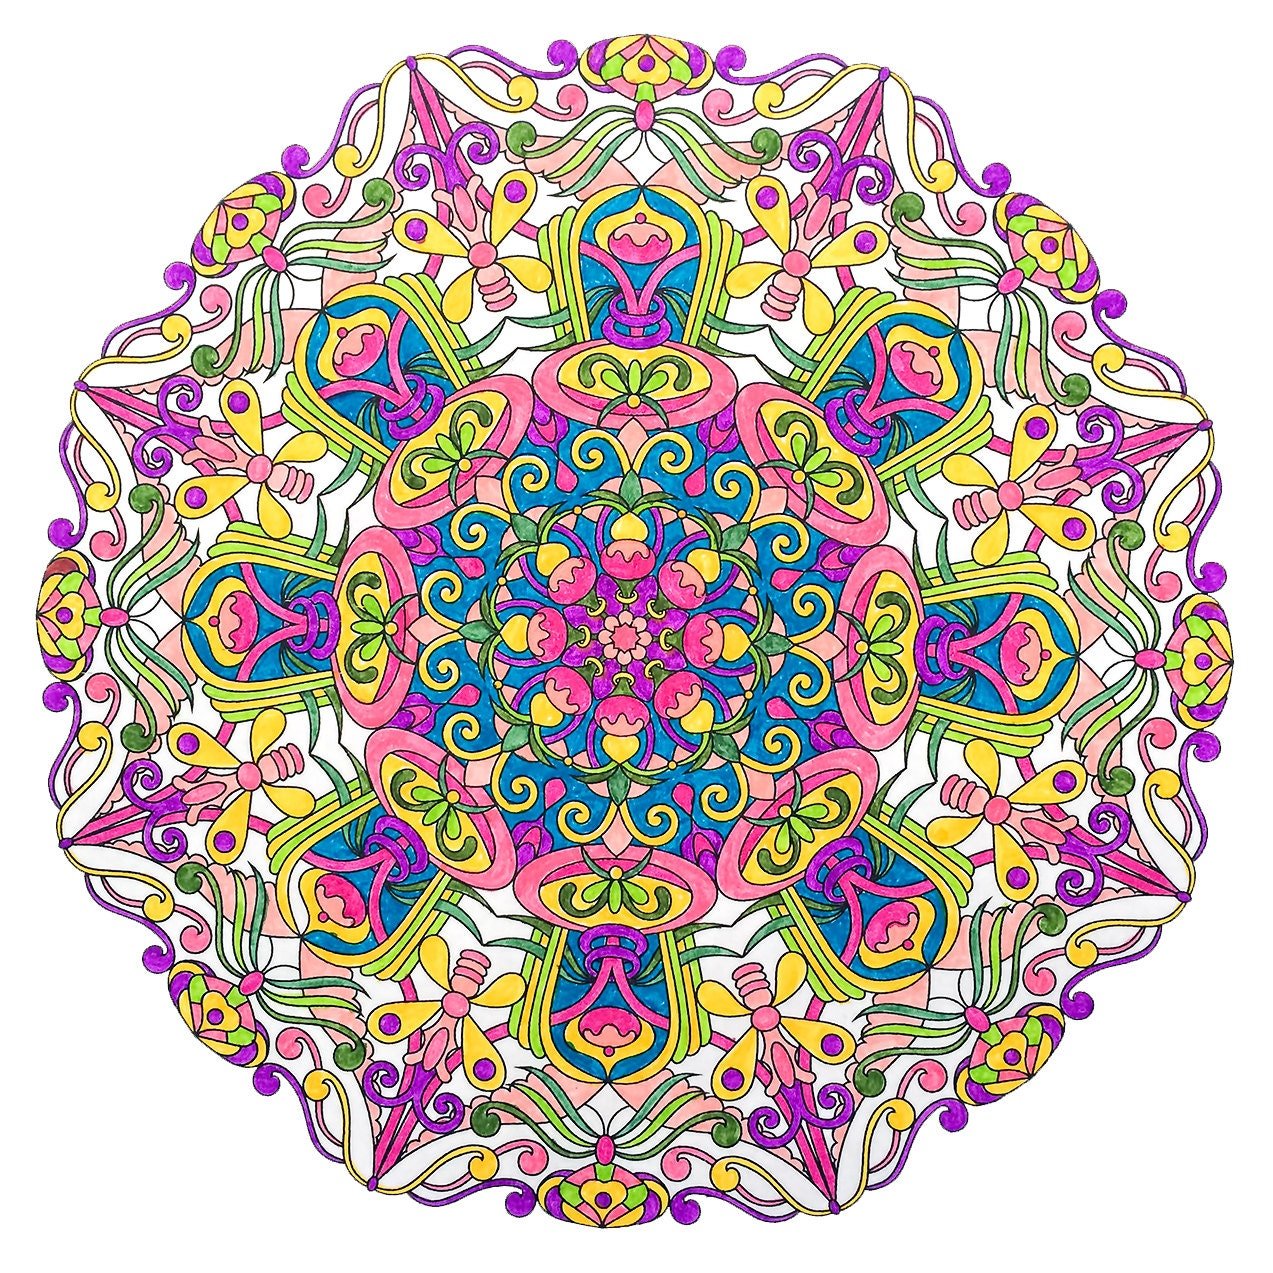 Mandala Speed coloring  Coloring page ArtTherapy  markers and colored pencils